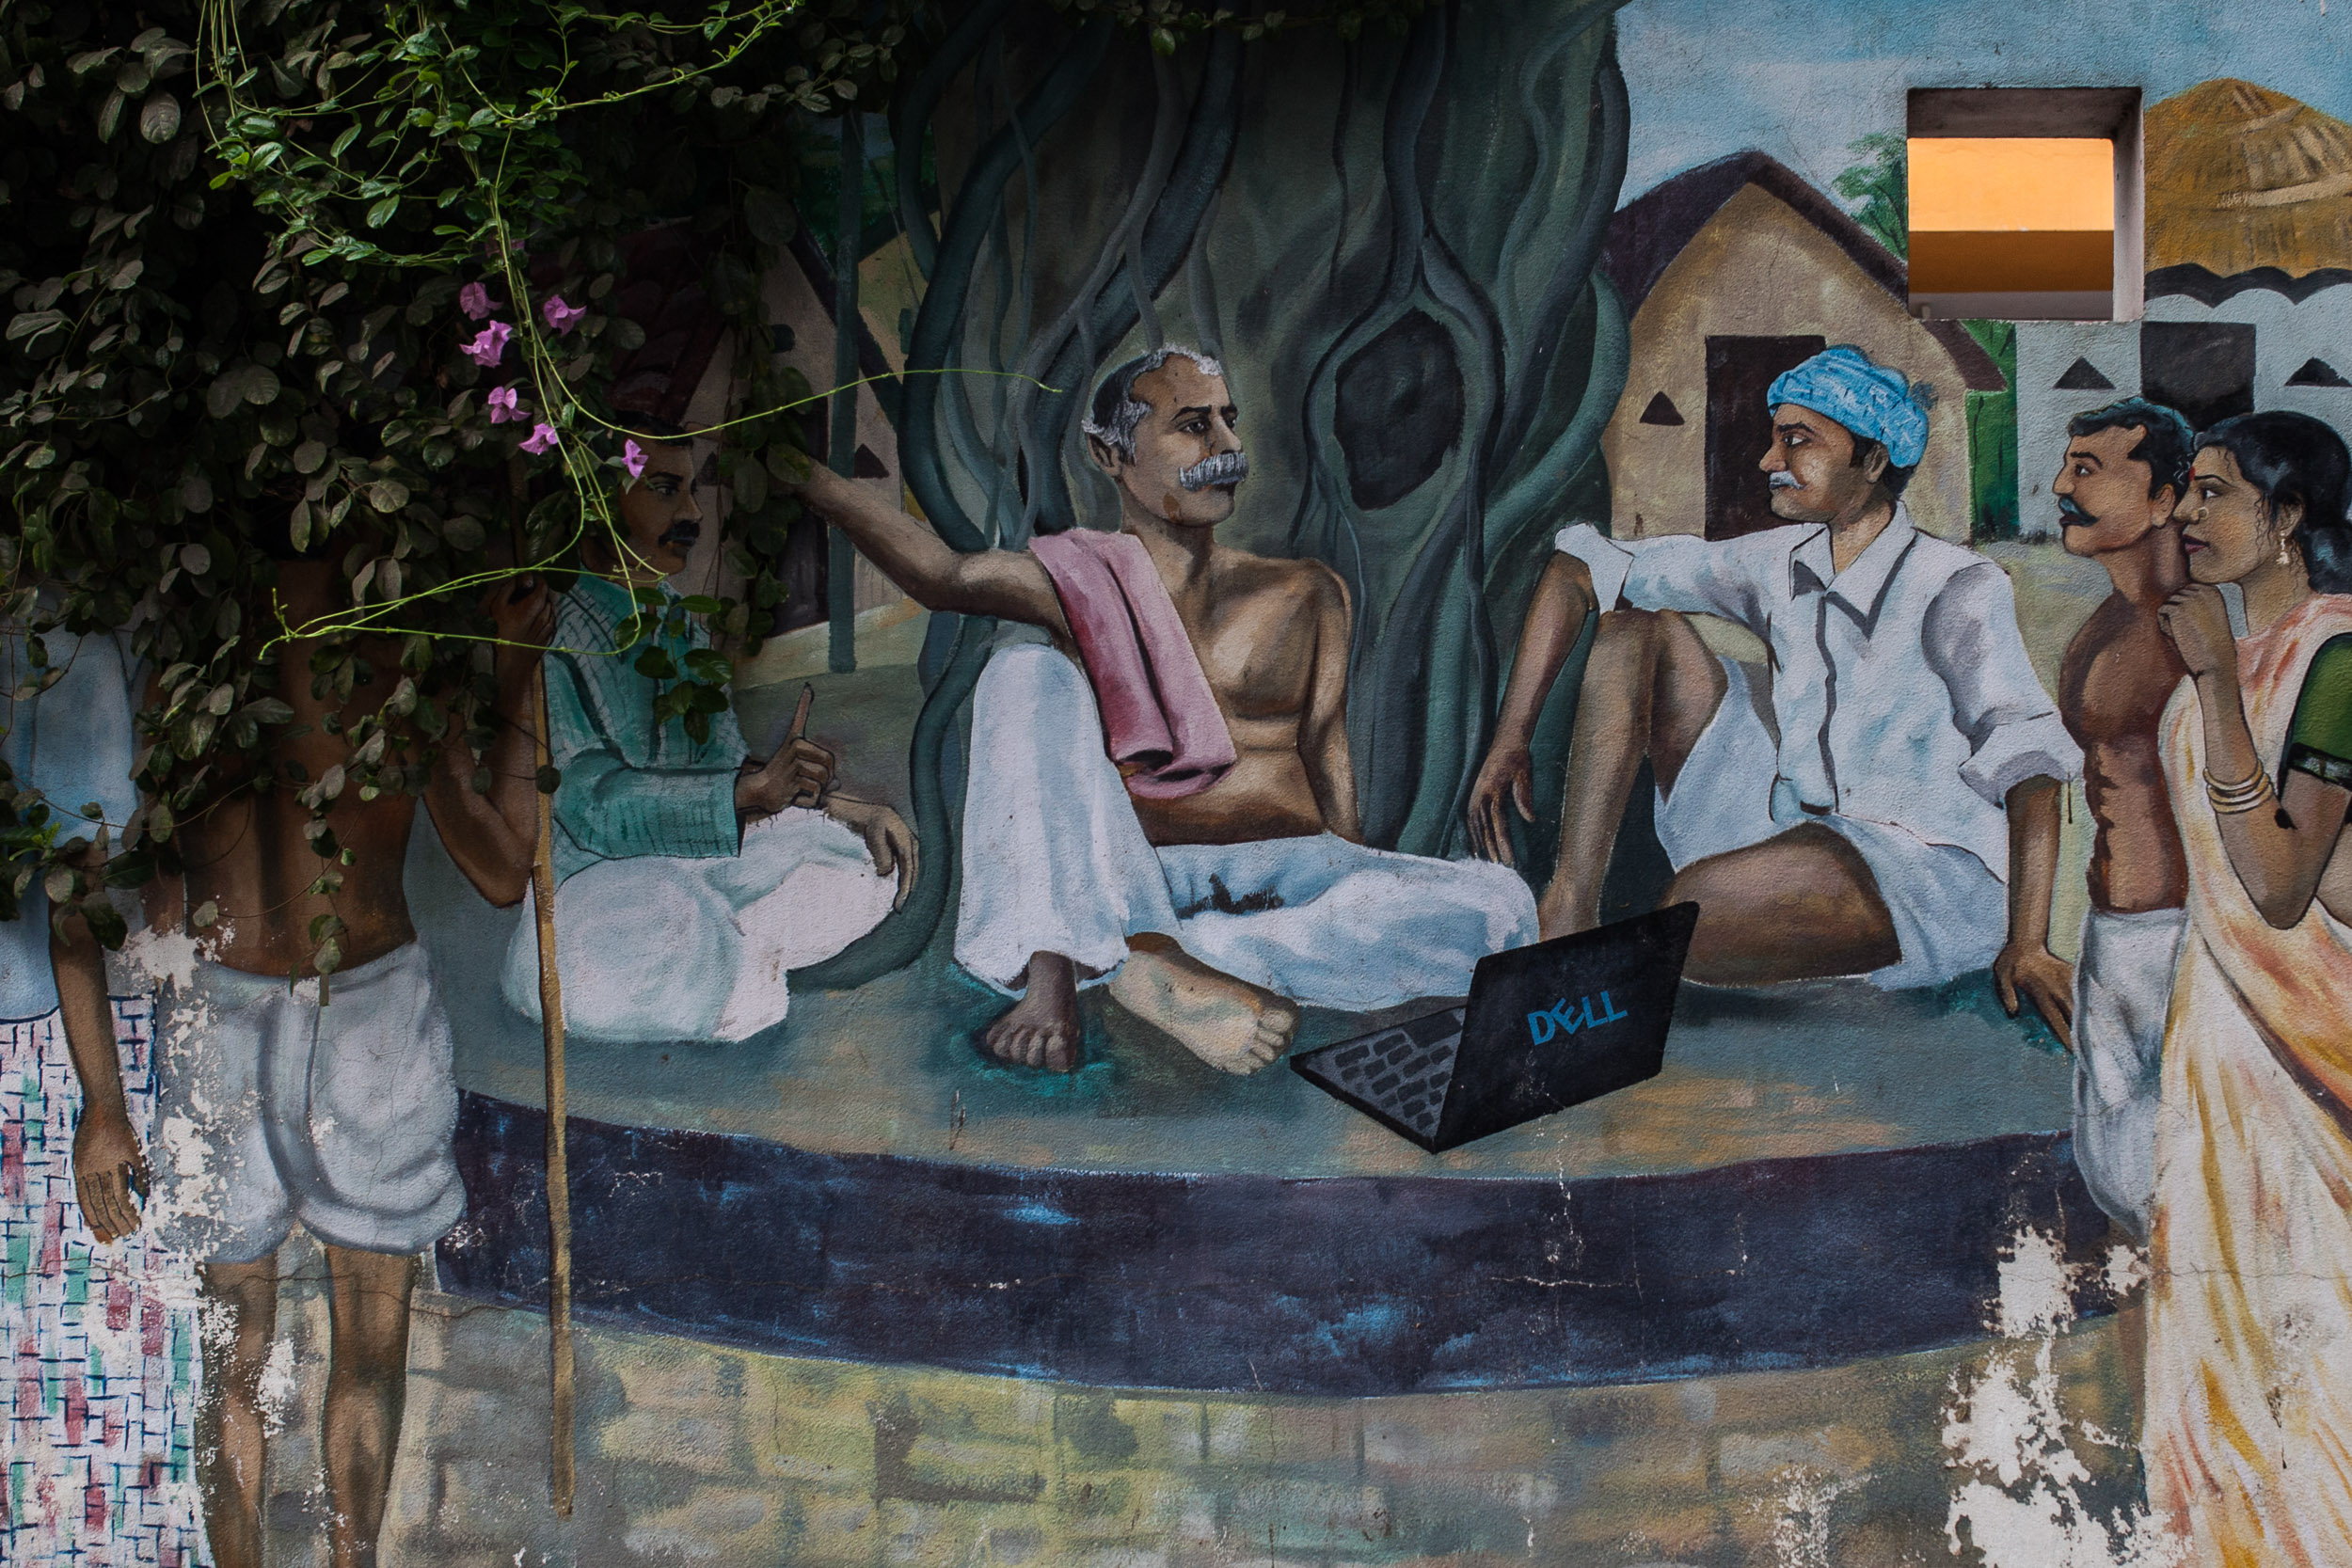 A mural in the technology hub of Hyderabad, India, depicts traditional villagers using modern tools such as a laptop.